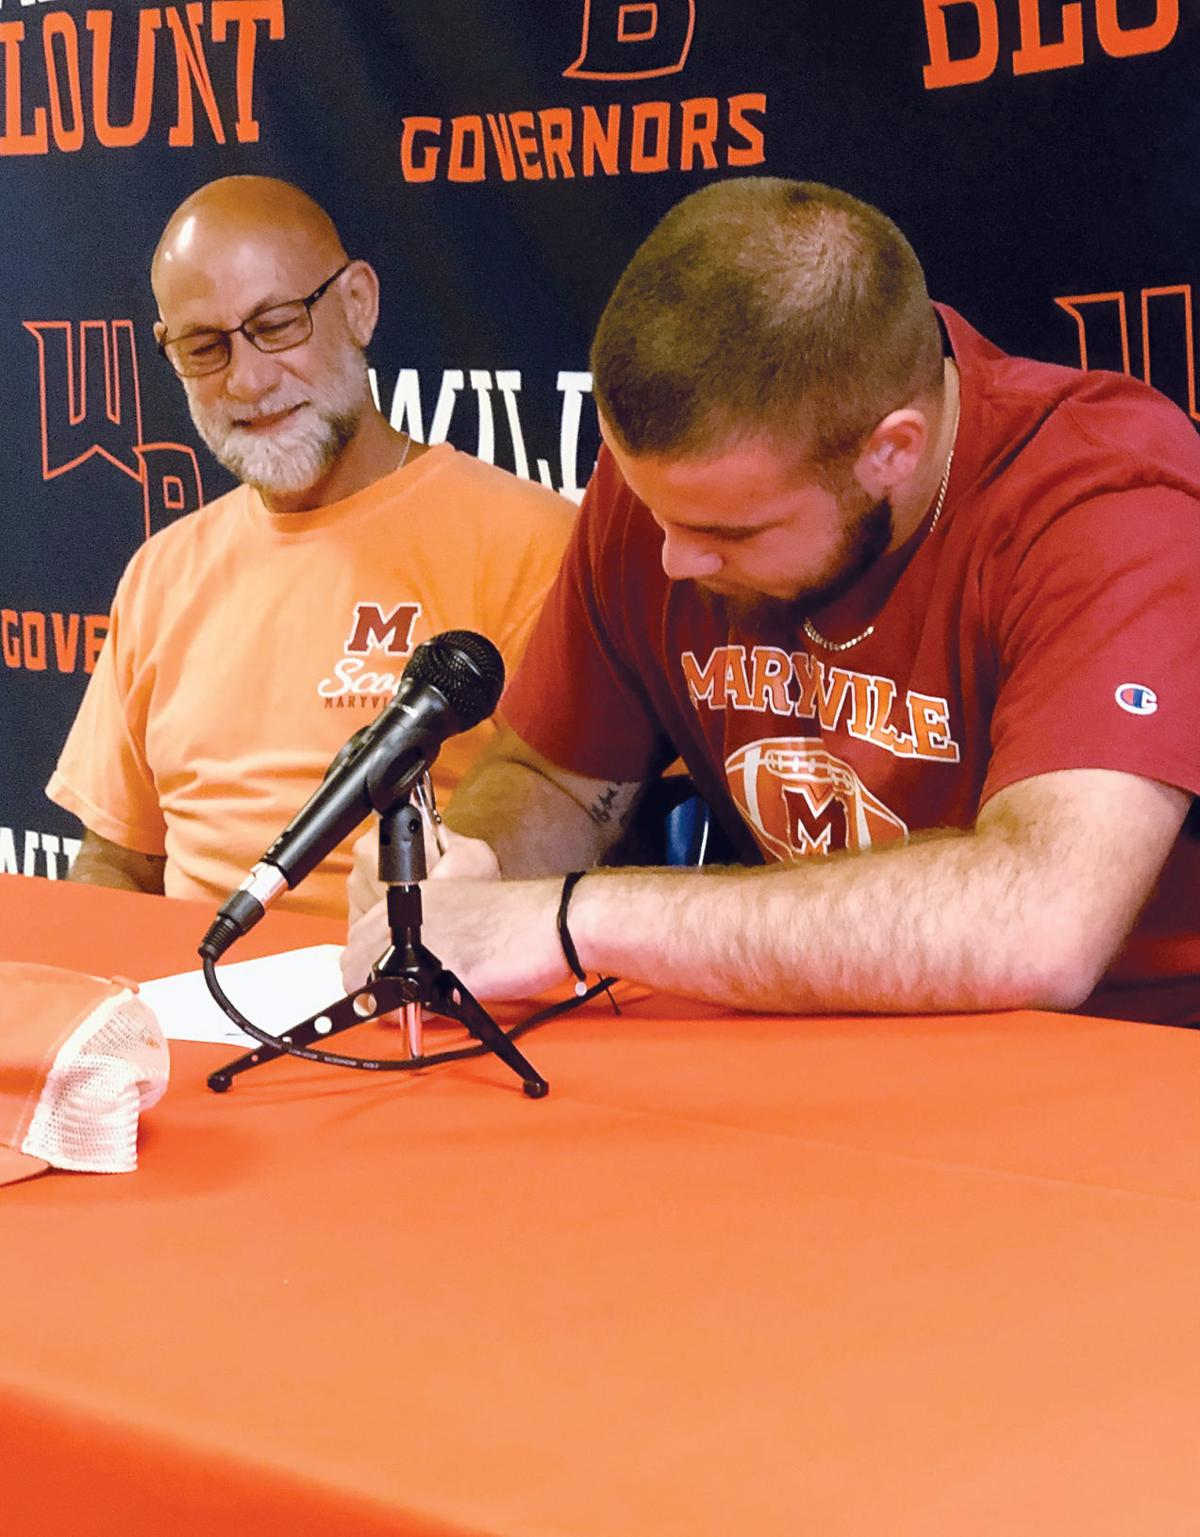 Evan Melhorn signing with Maryville College